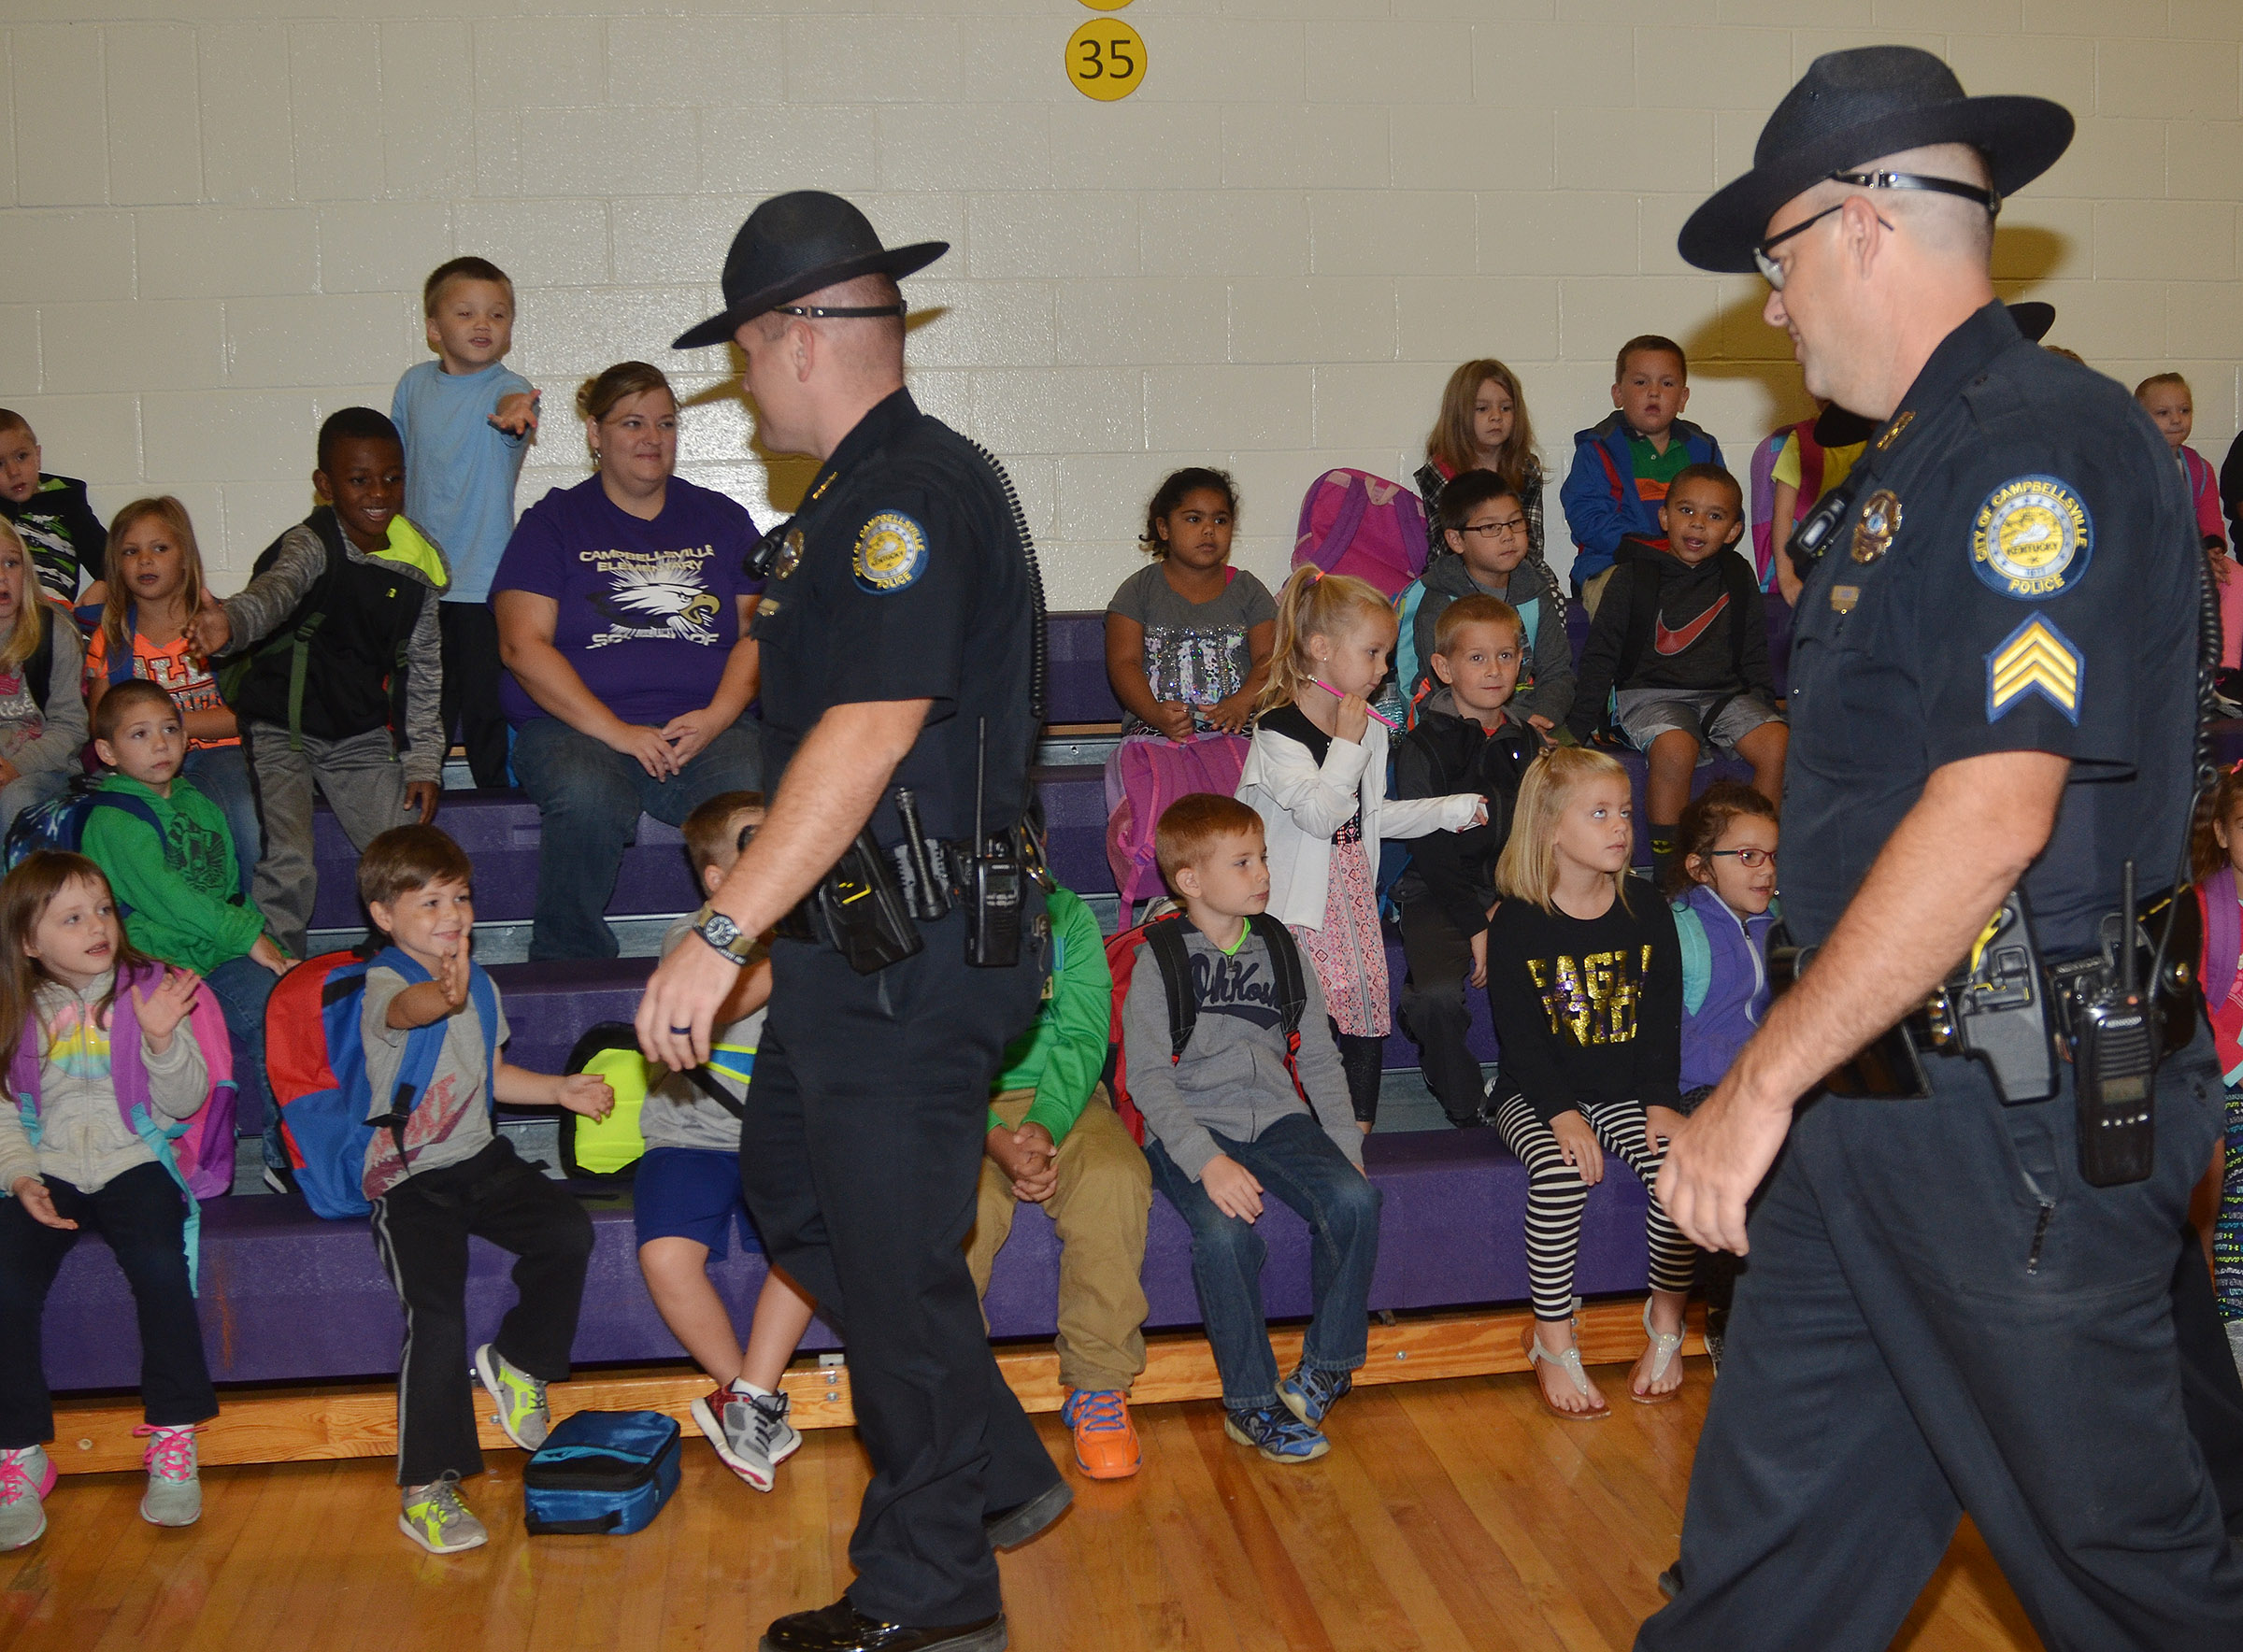 Campbellsville Police officers Jake Hedgespeth, at left, and David Tucker greet CES students during their Friday morning assembly.